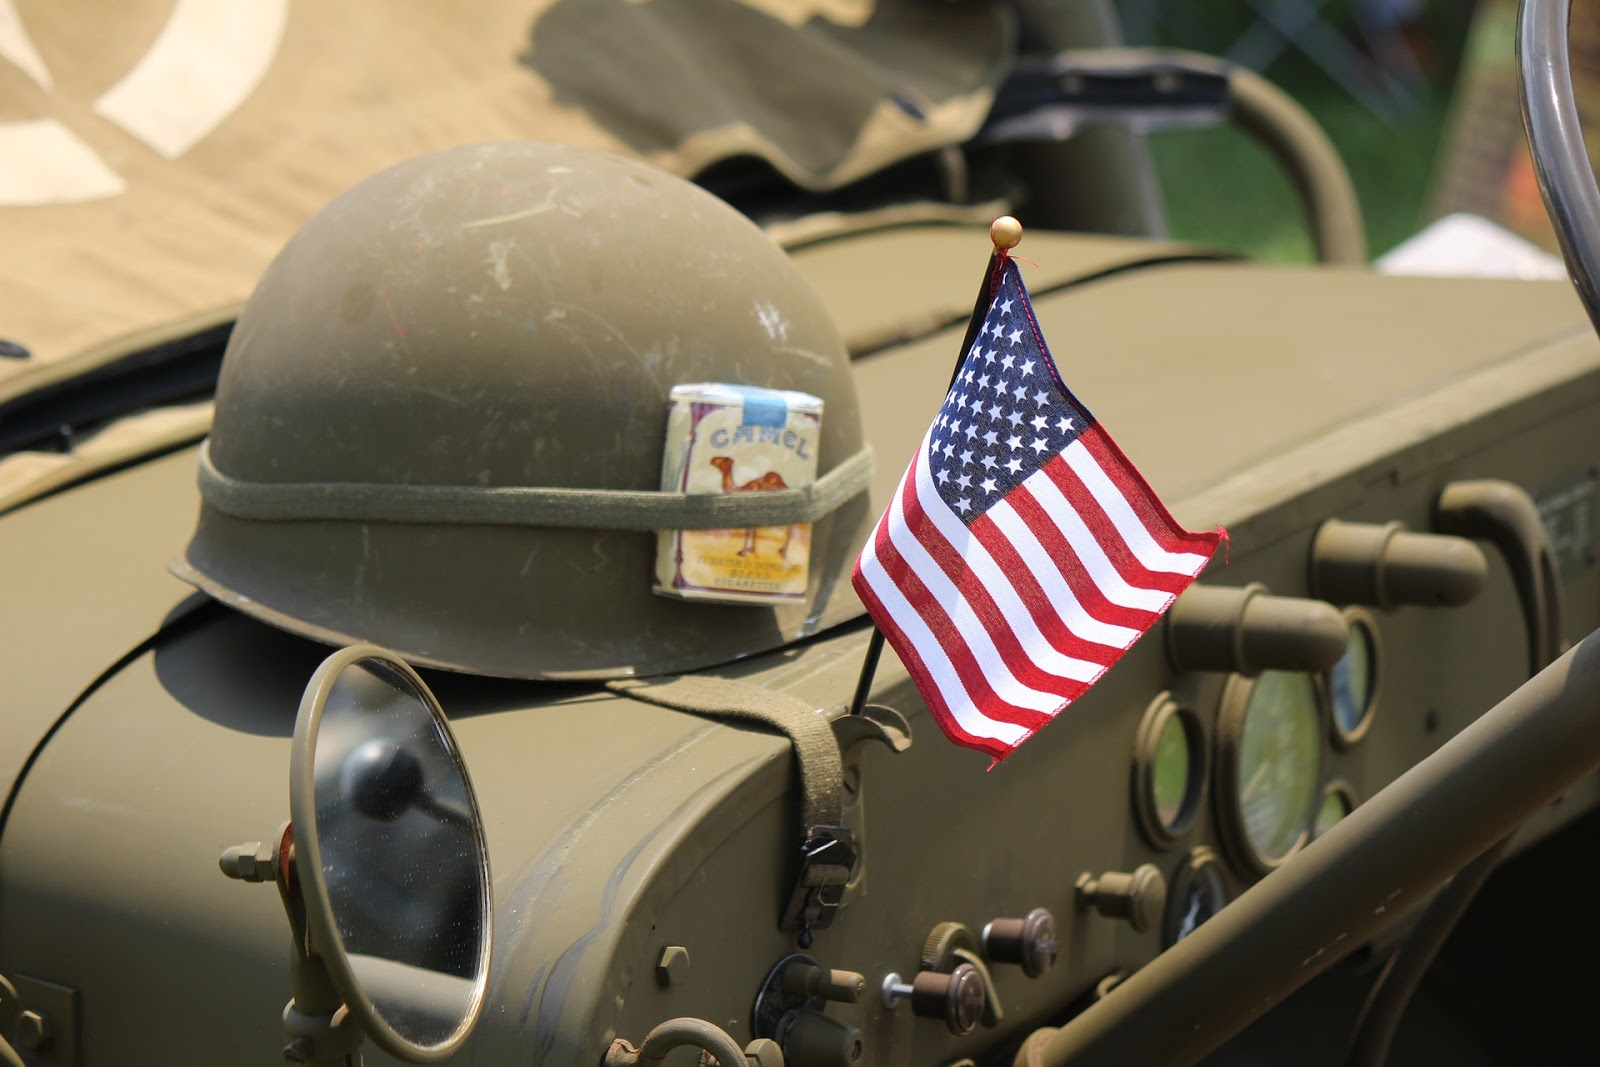 world war 2 helmet and small american flag lies on military jeep to illustrate blog post about u.s. army movies